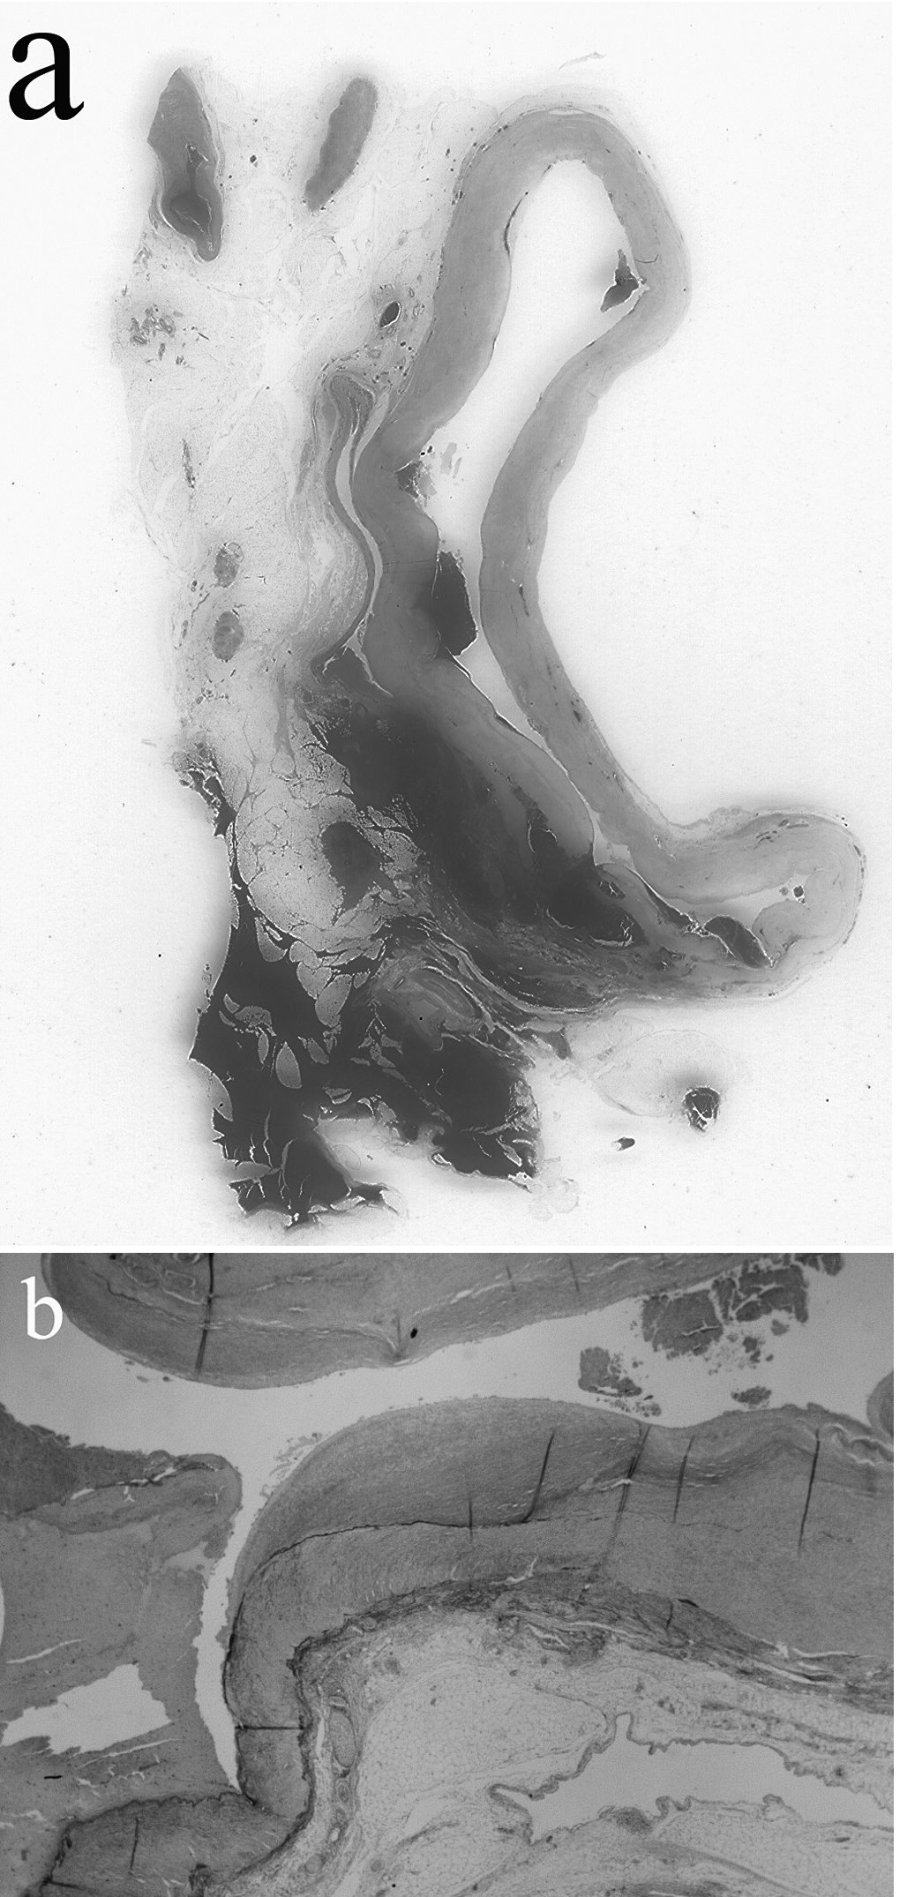 Cross section of the splenic artery aneurysm (a; H&E staining) and destruction of the internal elastic lamina (b; EVG staining, objective x2)